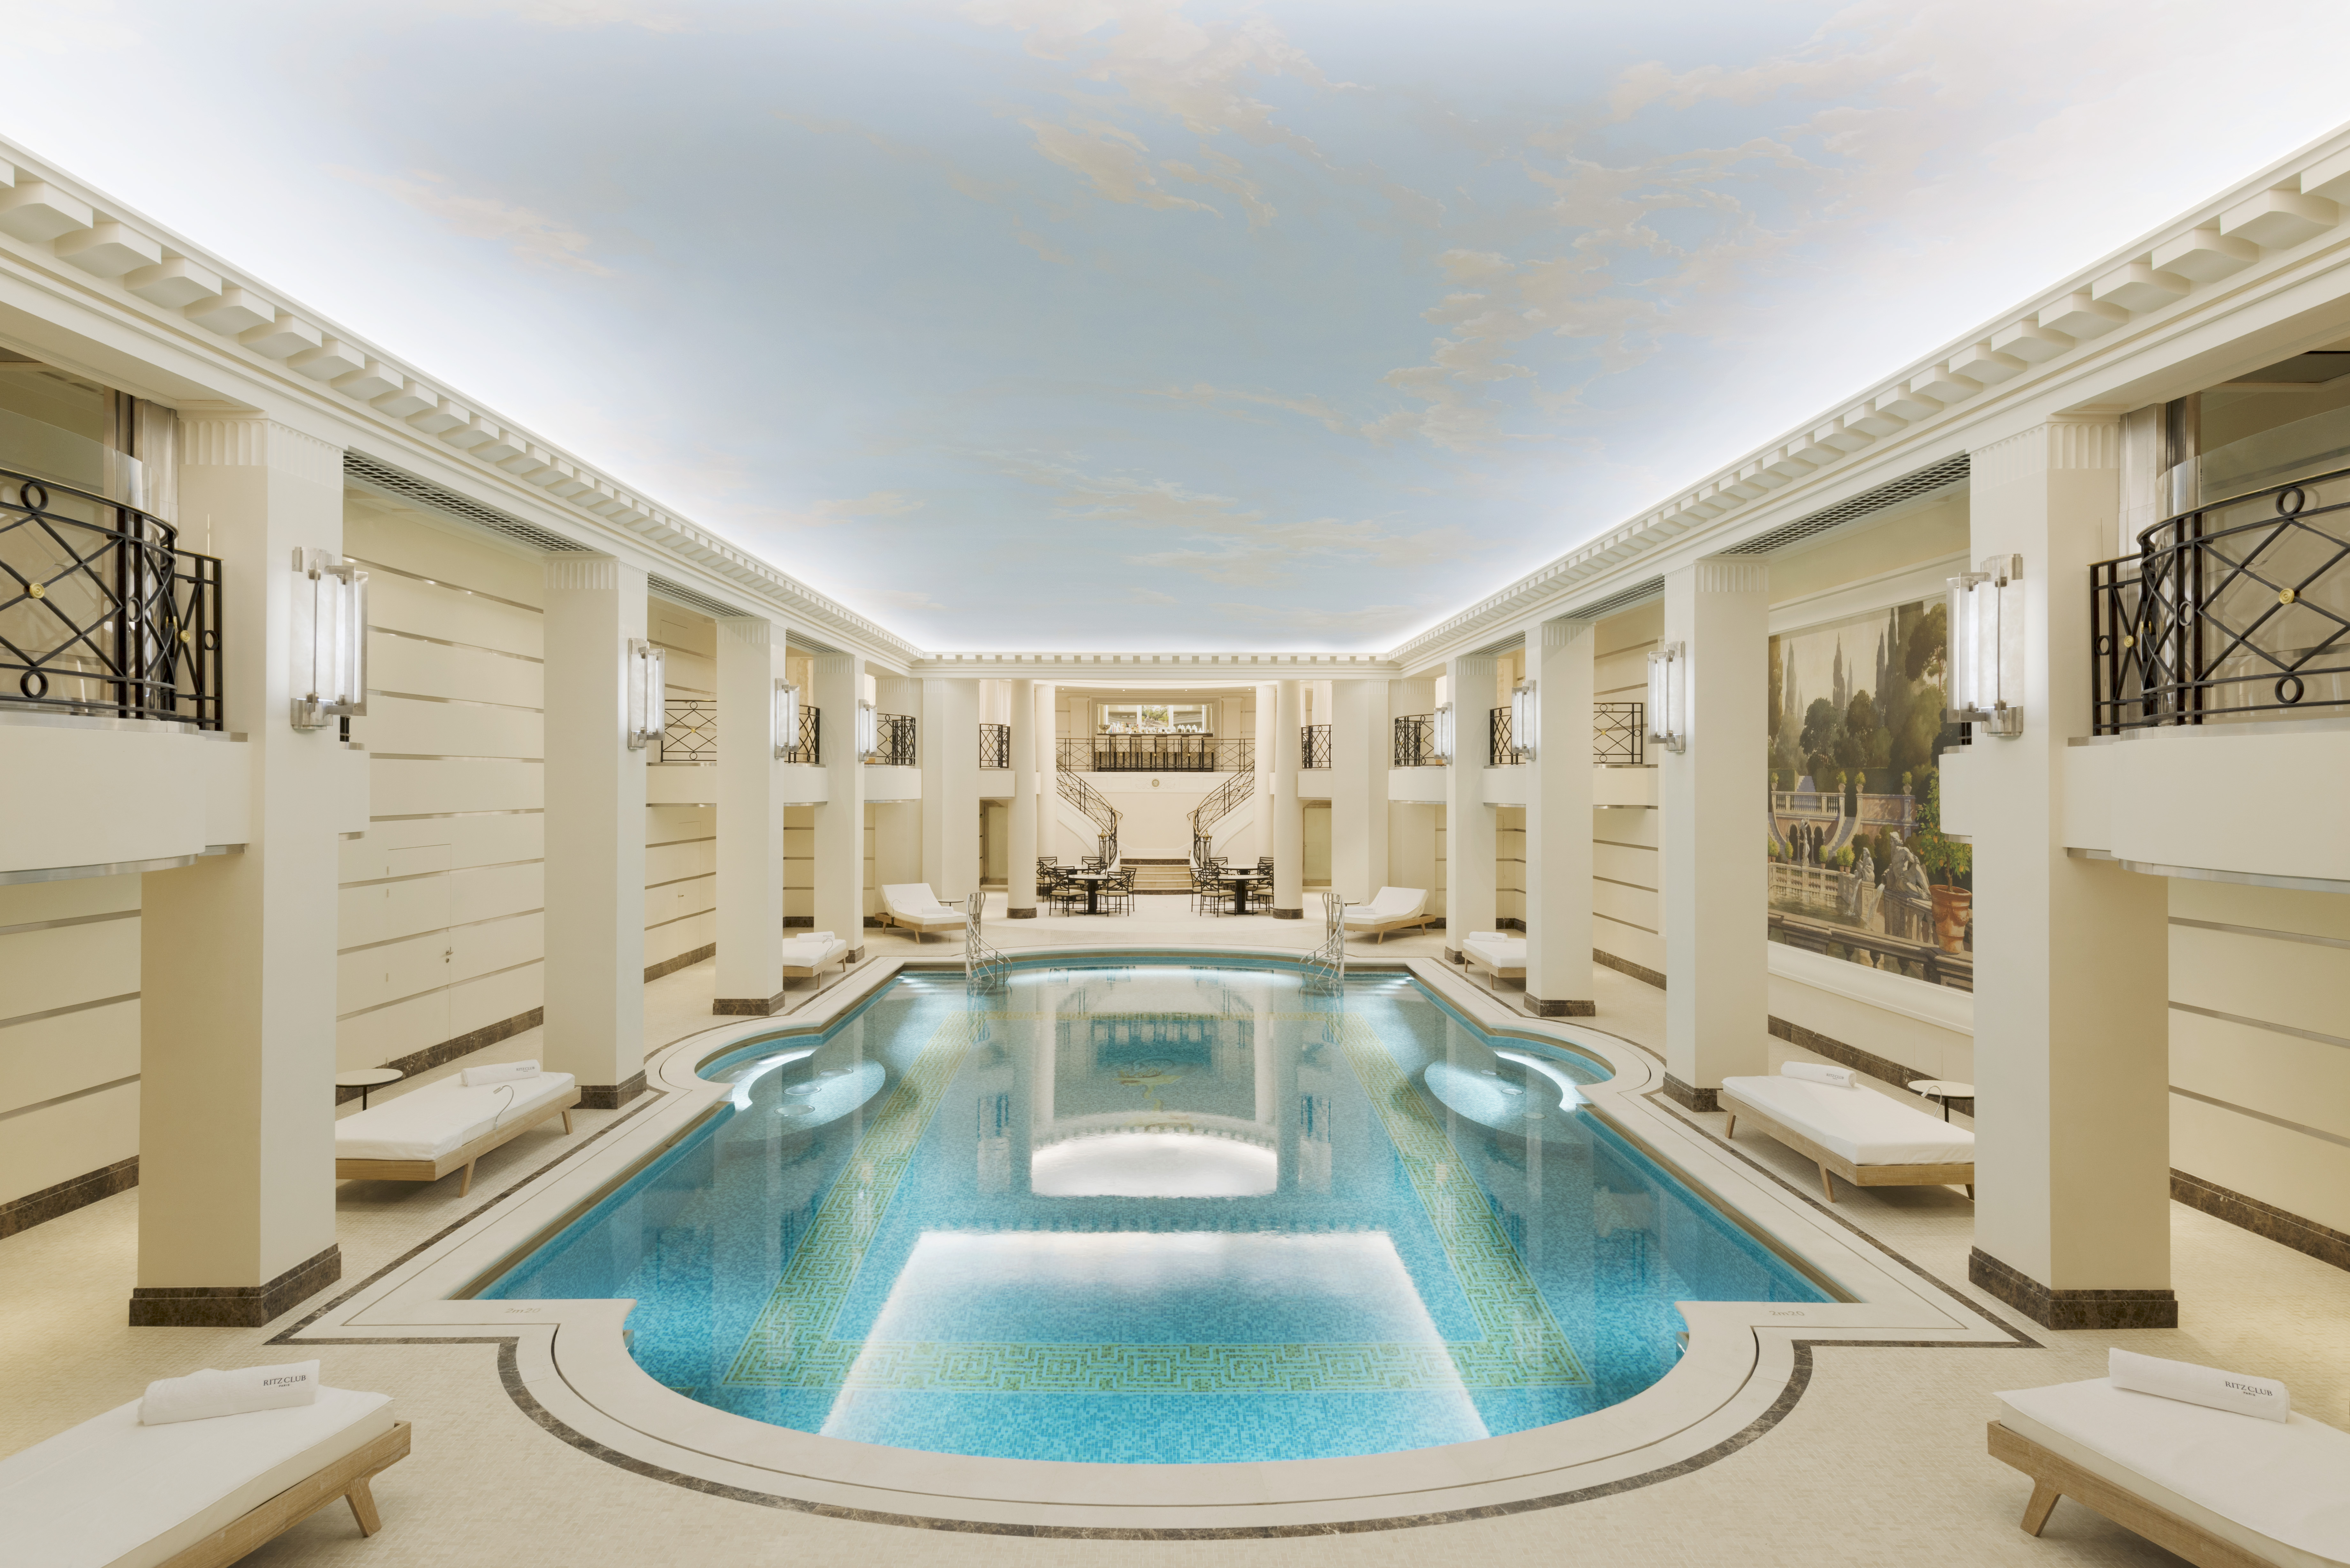 Interior pool at the newly renovated Coco Chanel spa at the Ritz Paris